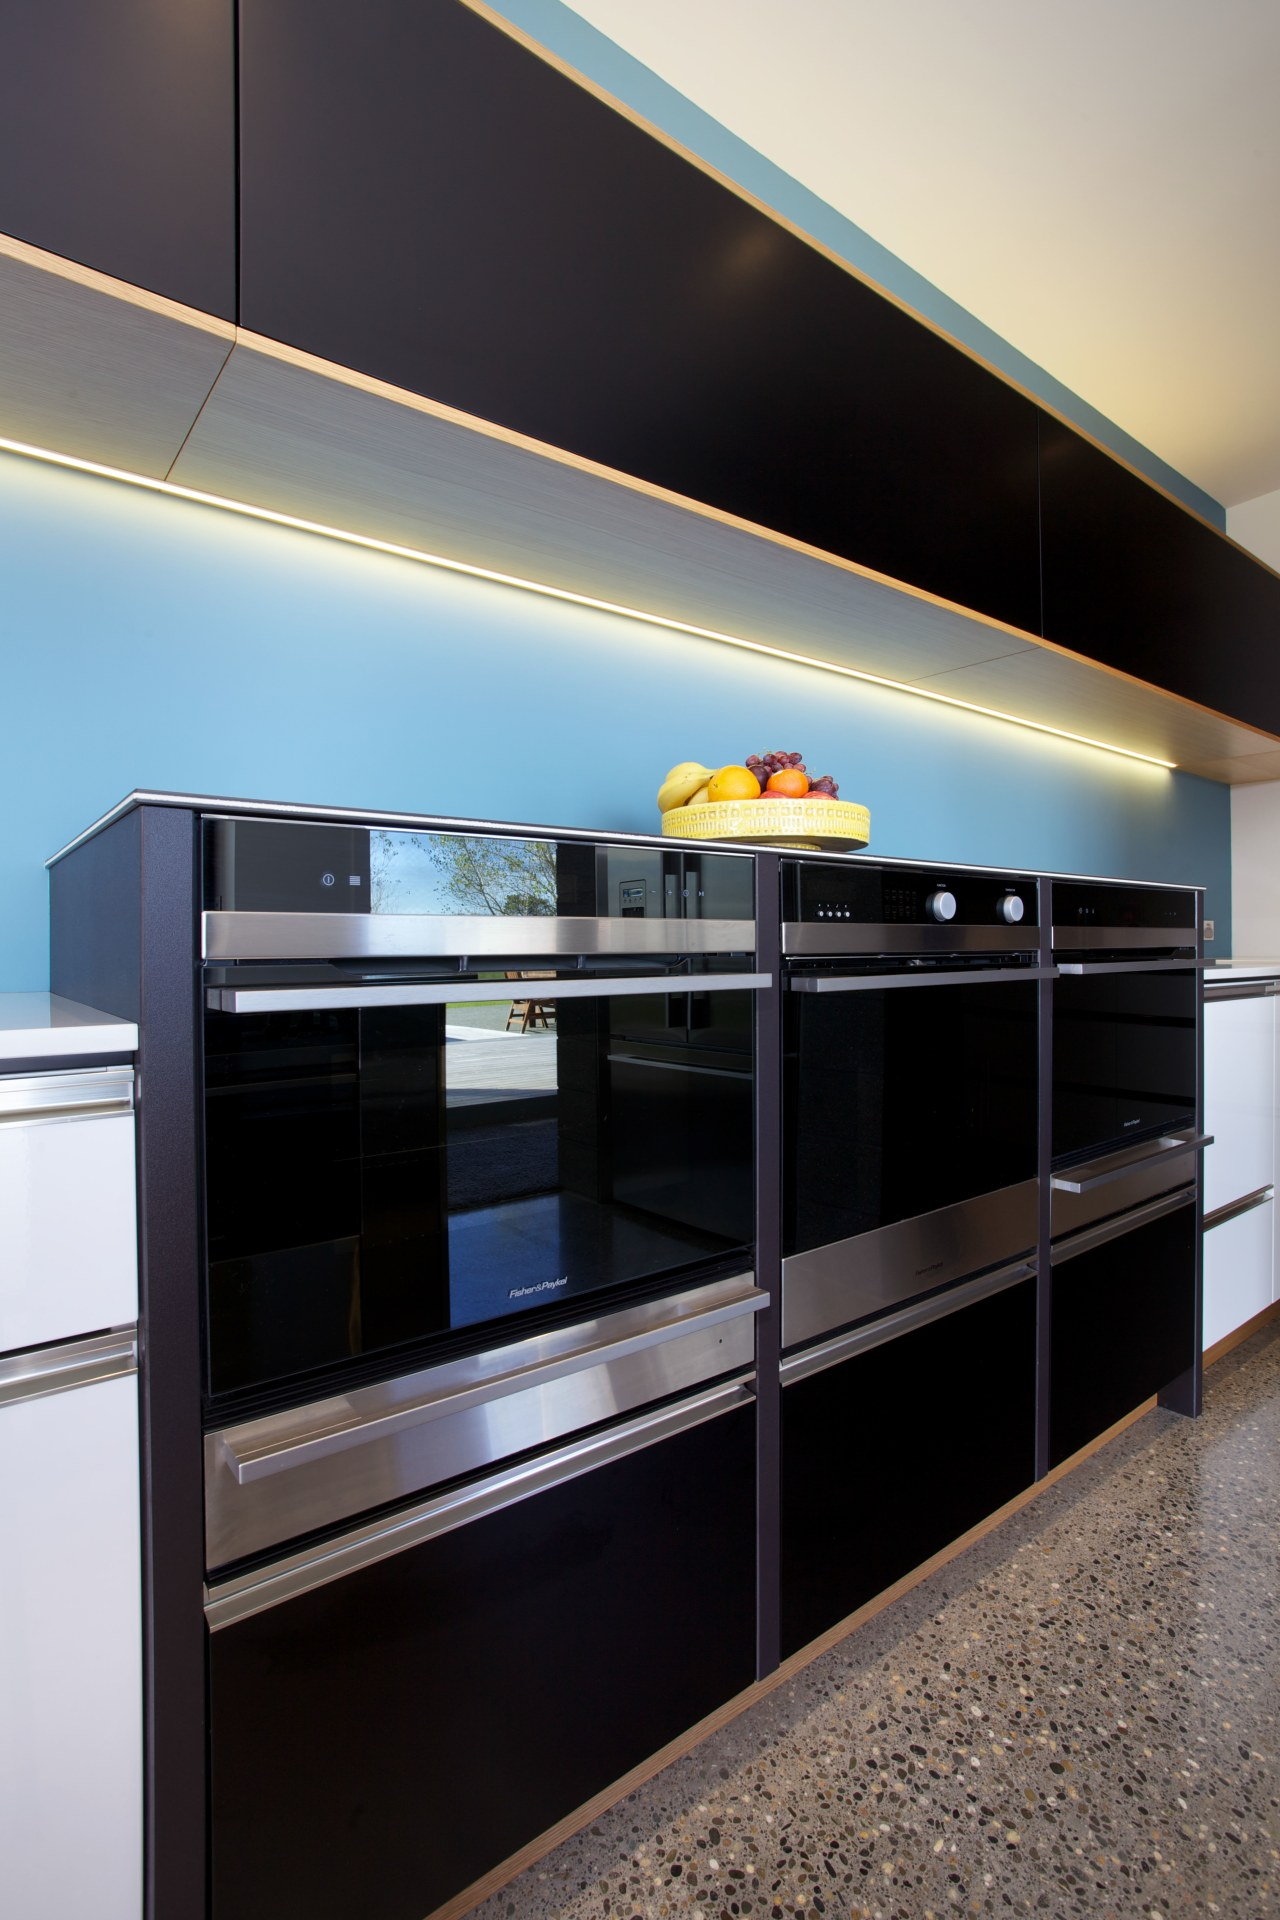 Modern kitchen with bank of Fisher & Paykel cabinetry, countertop, interior design, kitchen, shelving, black, gray